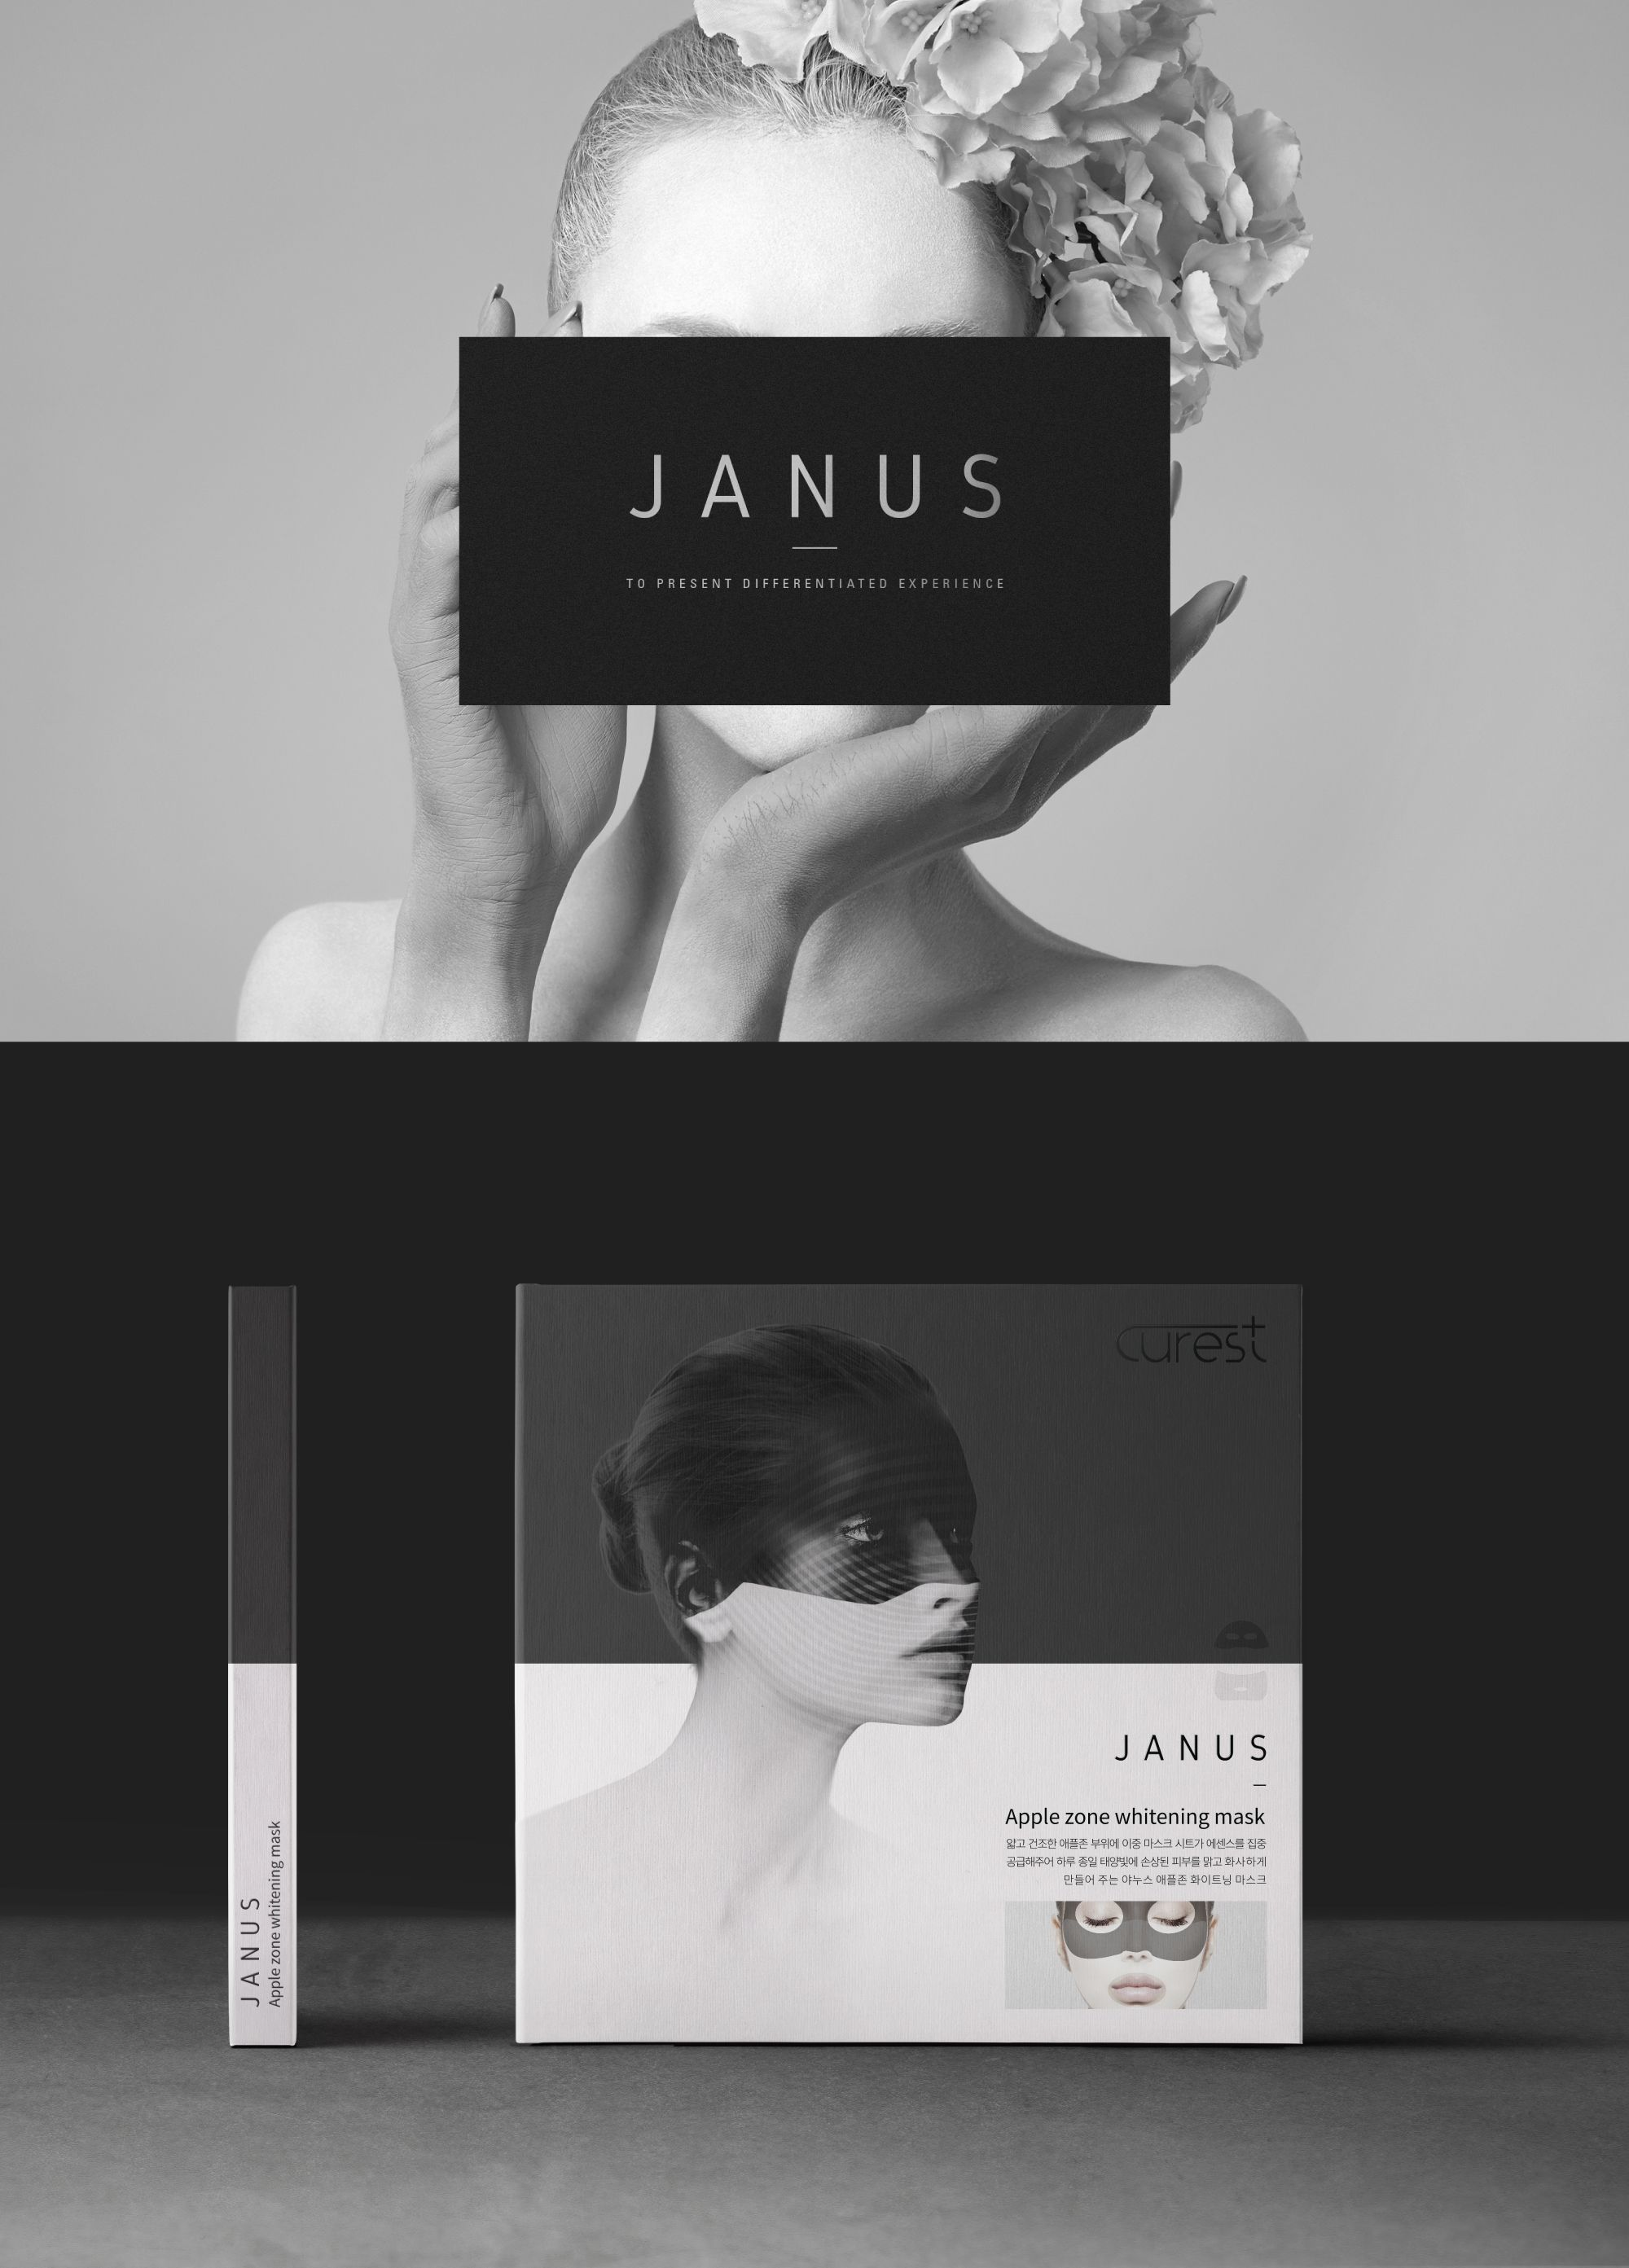 Kingsmen  l  BX Lab. / Janus-Facial-Mask / kingsmenbxlab.com _cosmetic / branding / package / mask